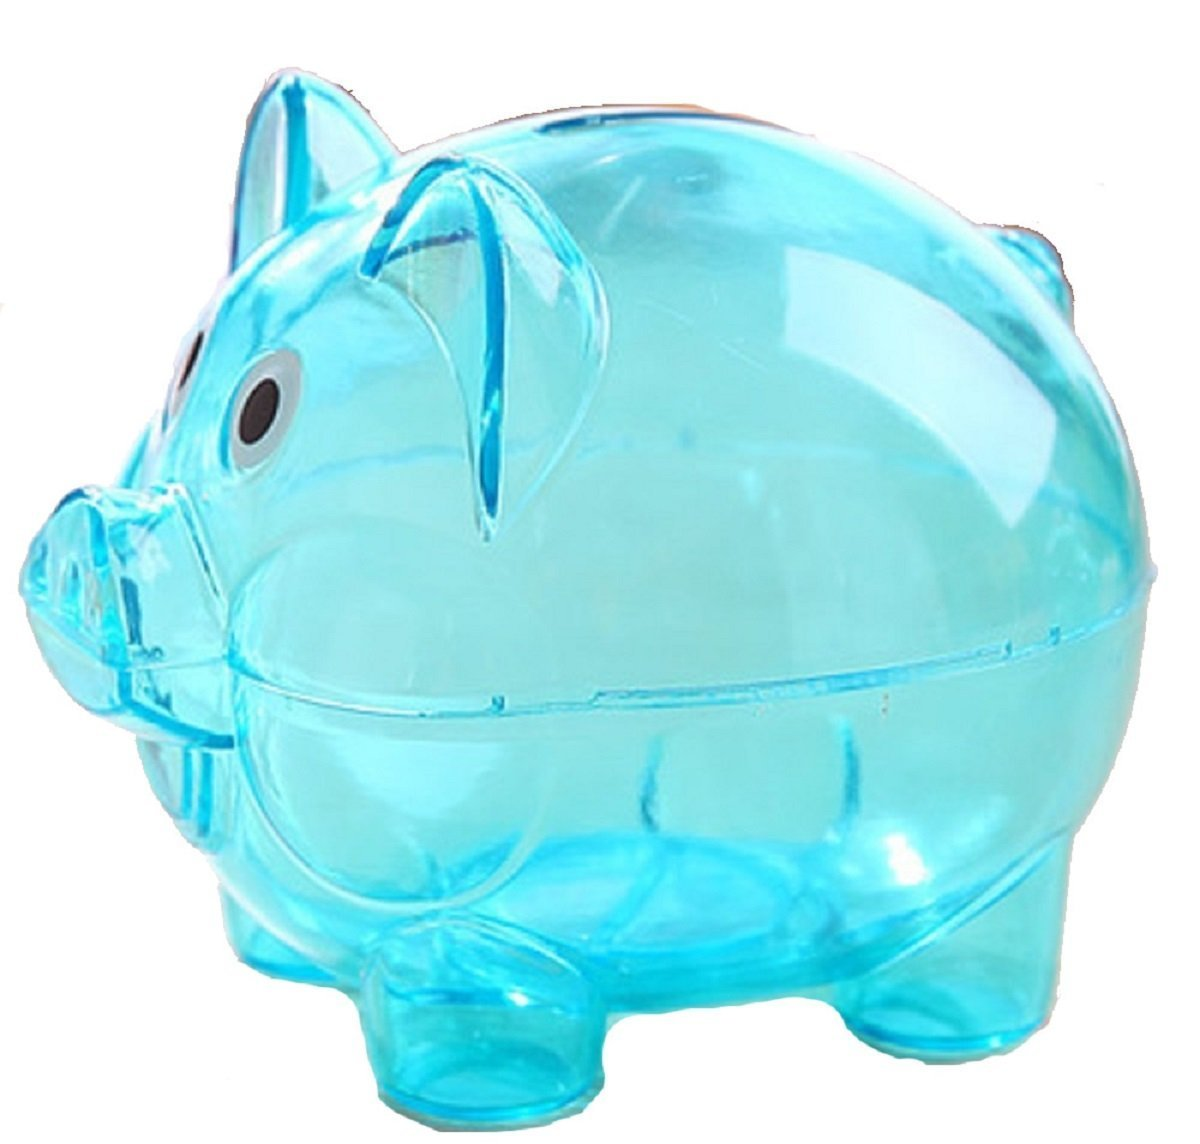 Piggy Bank for Kids - Colorful Transparent Money Saving Box - Boys Girls Cute Cartoon Money Pot (Large, Blue) F&U